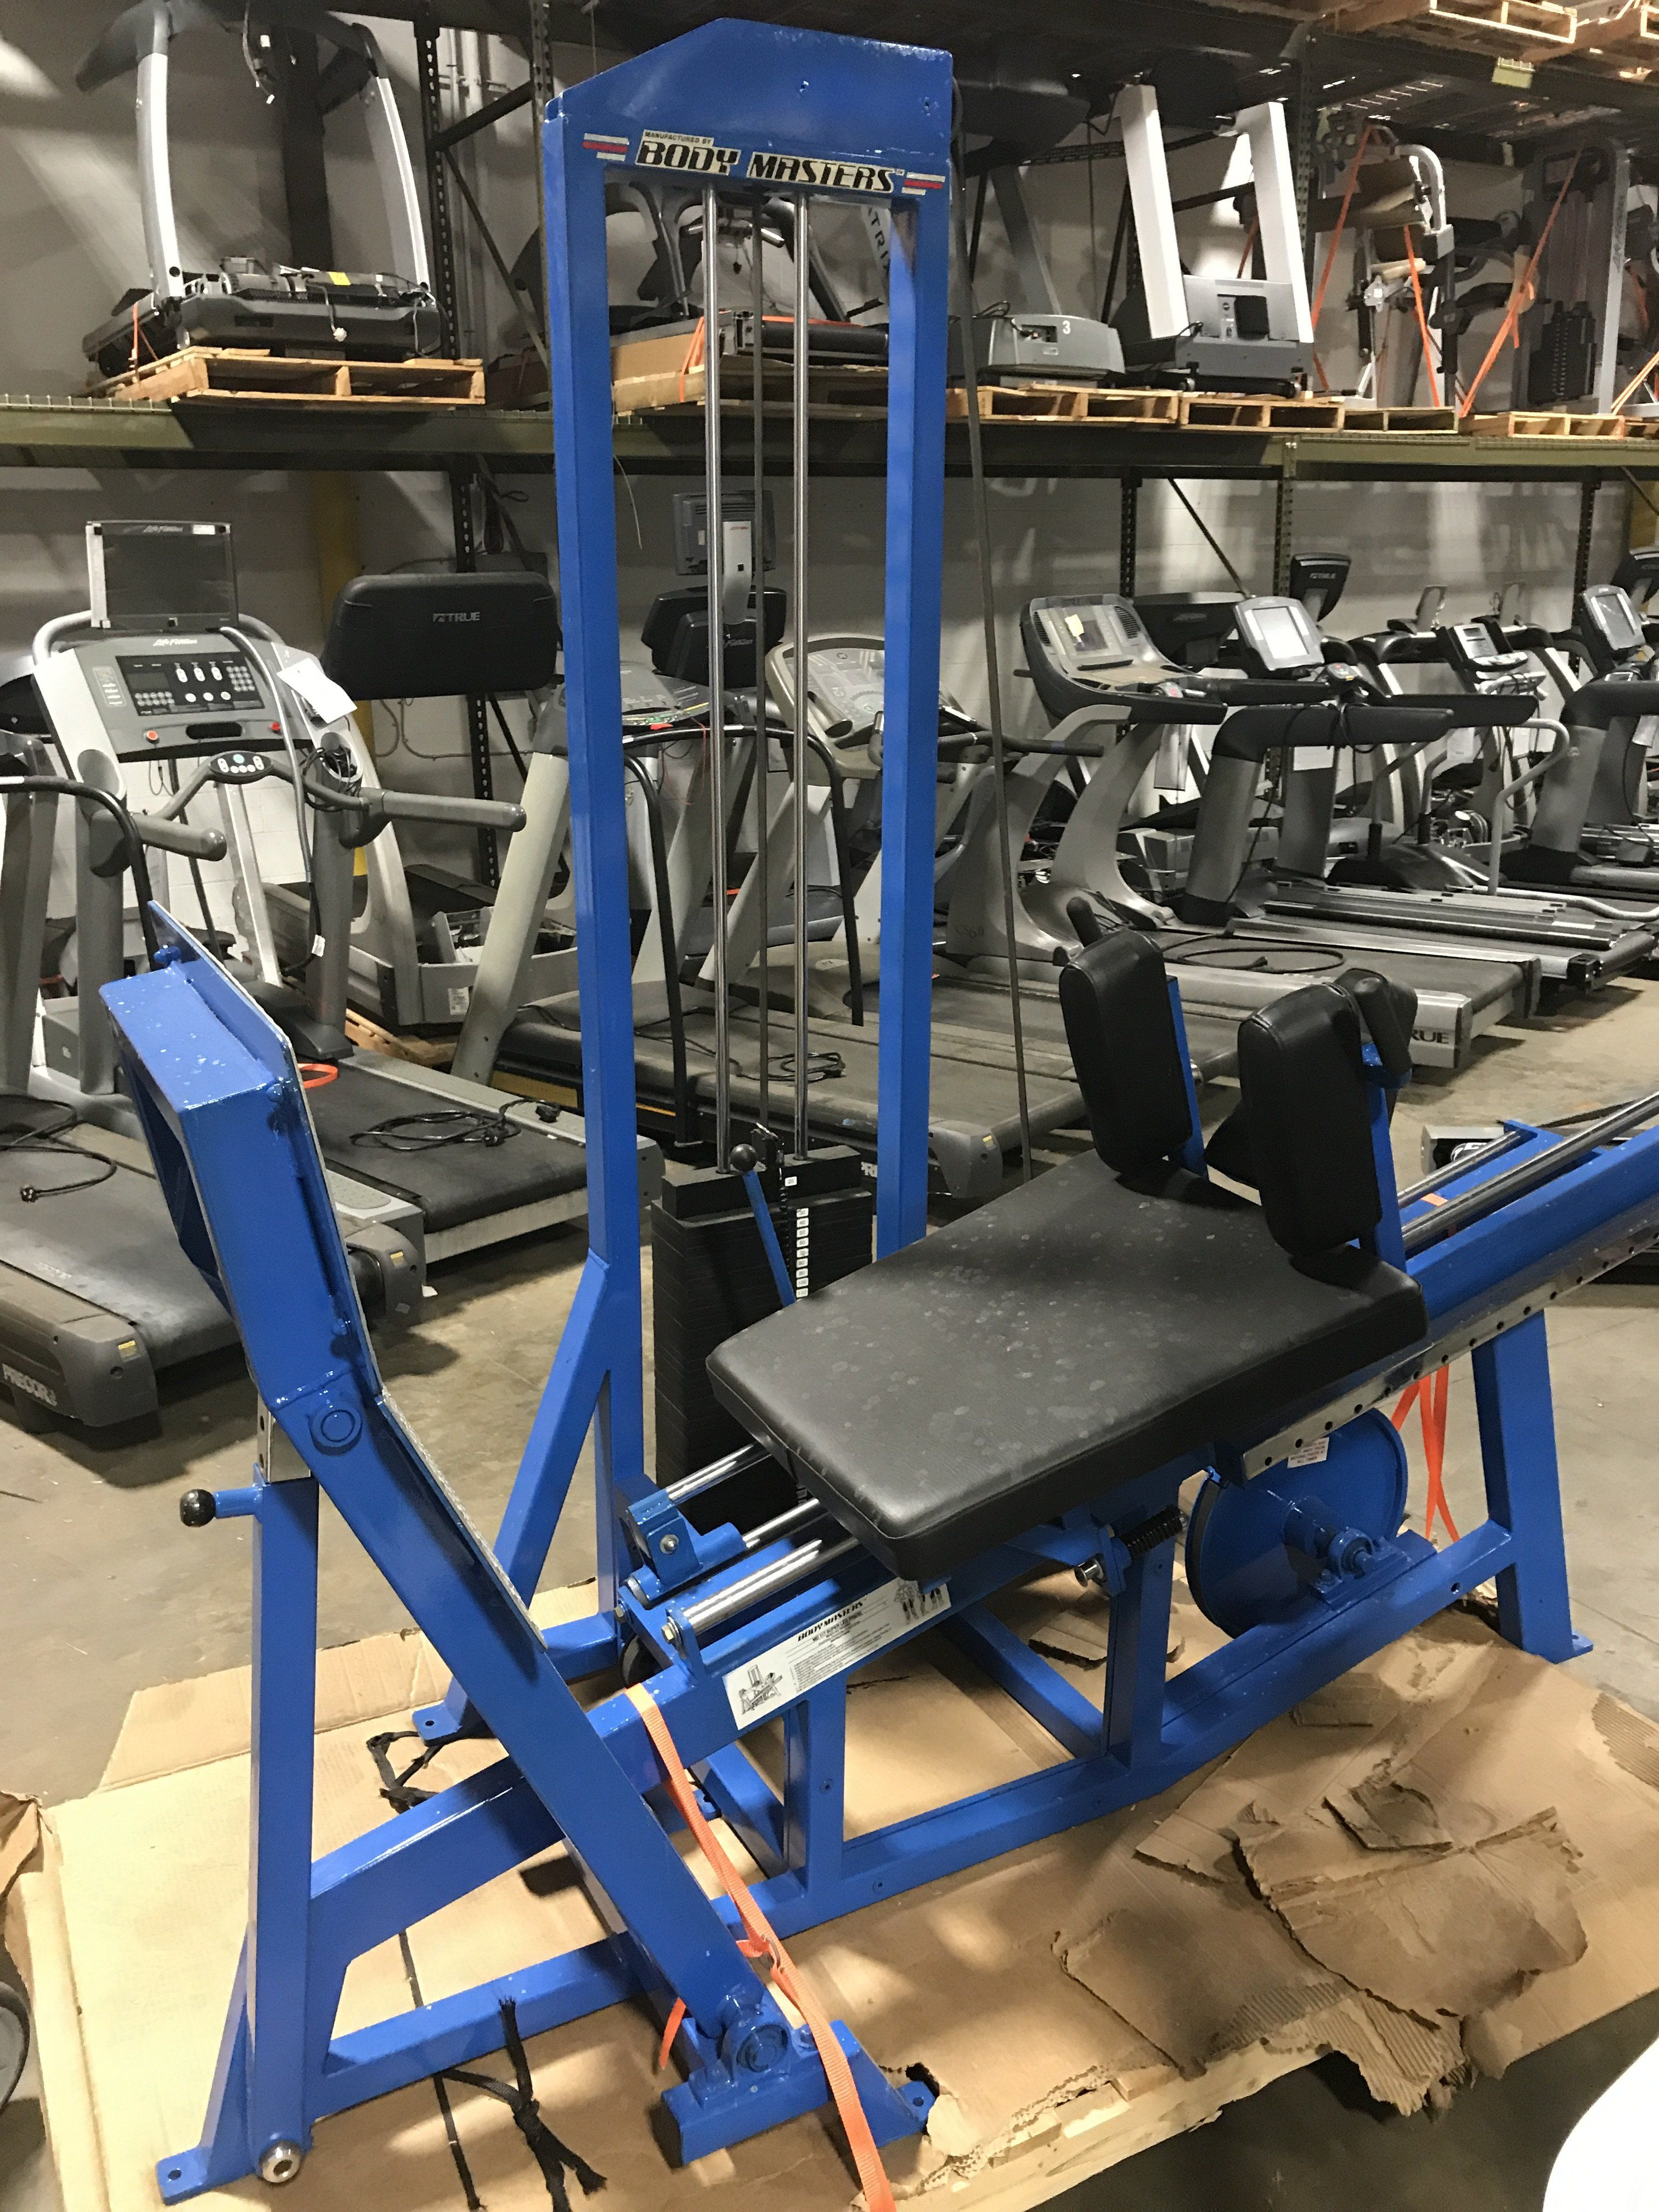 Save Big On Gym Equipment Body Masters Lyin Check It Out Here Http Www Fitnesstrendz Co At Home Gym Commercial Fitness Equipment Home Workout Equipment